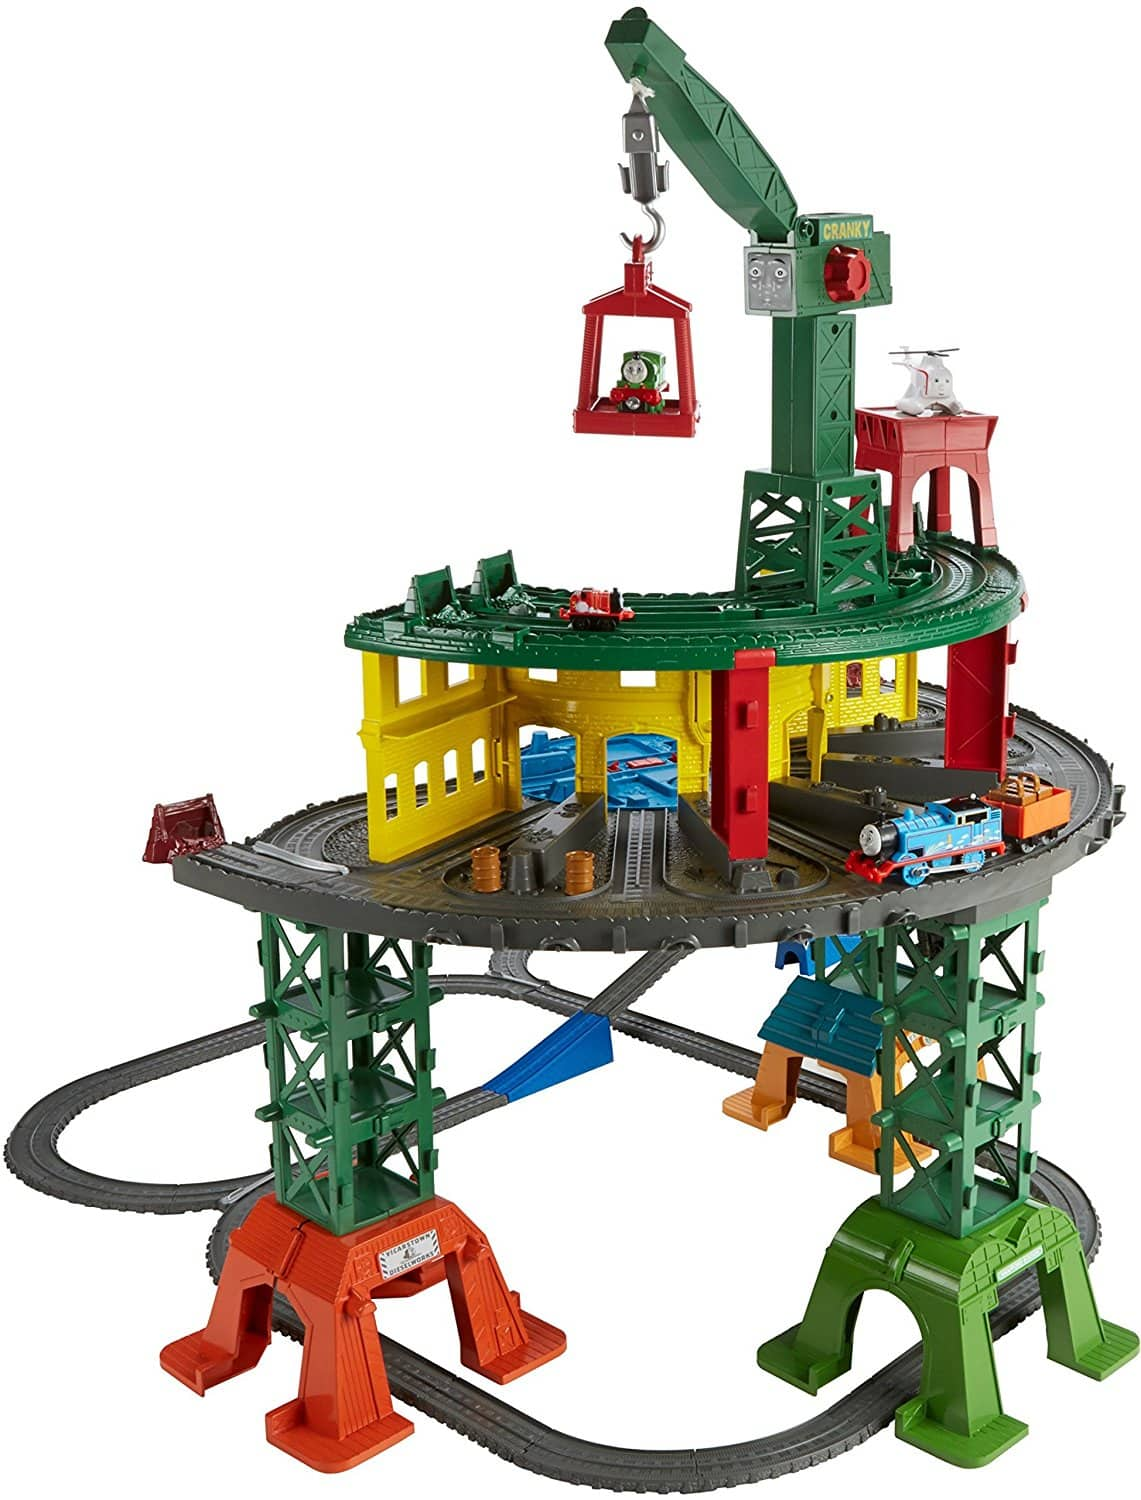 Fisher-Price Thomas & Friends Super Station Playset $76